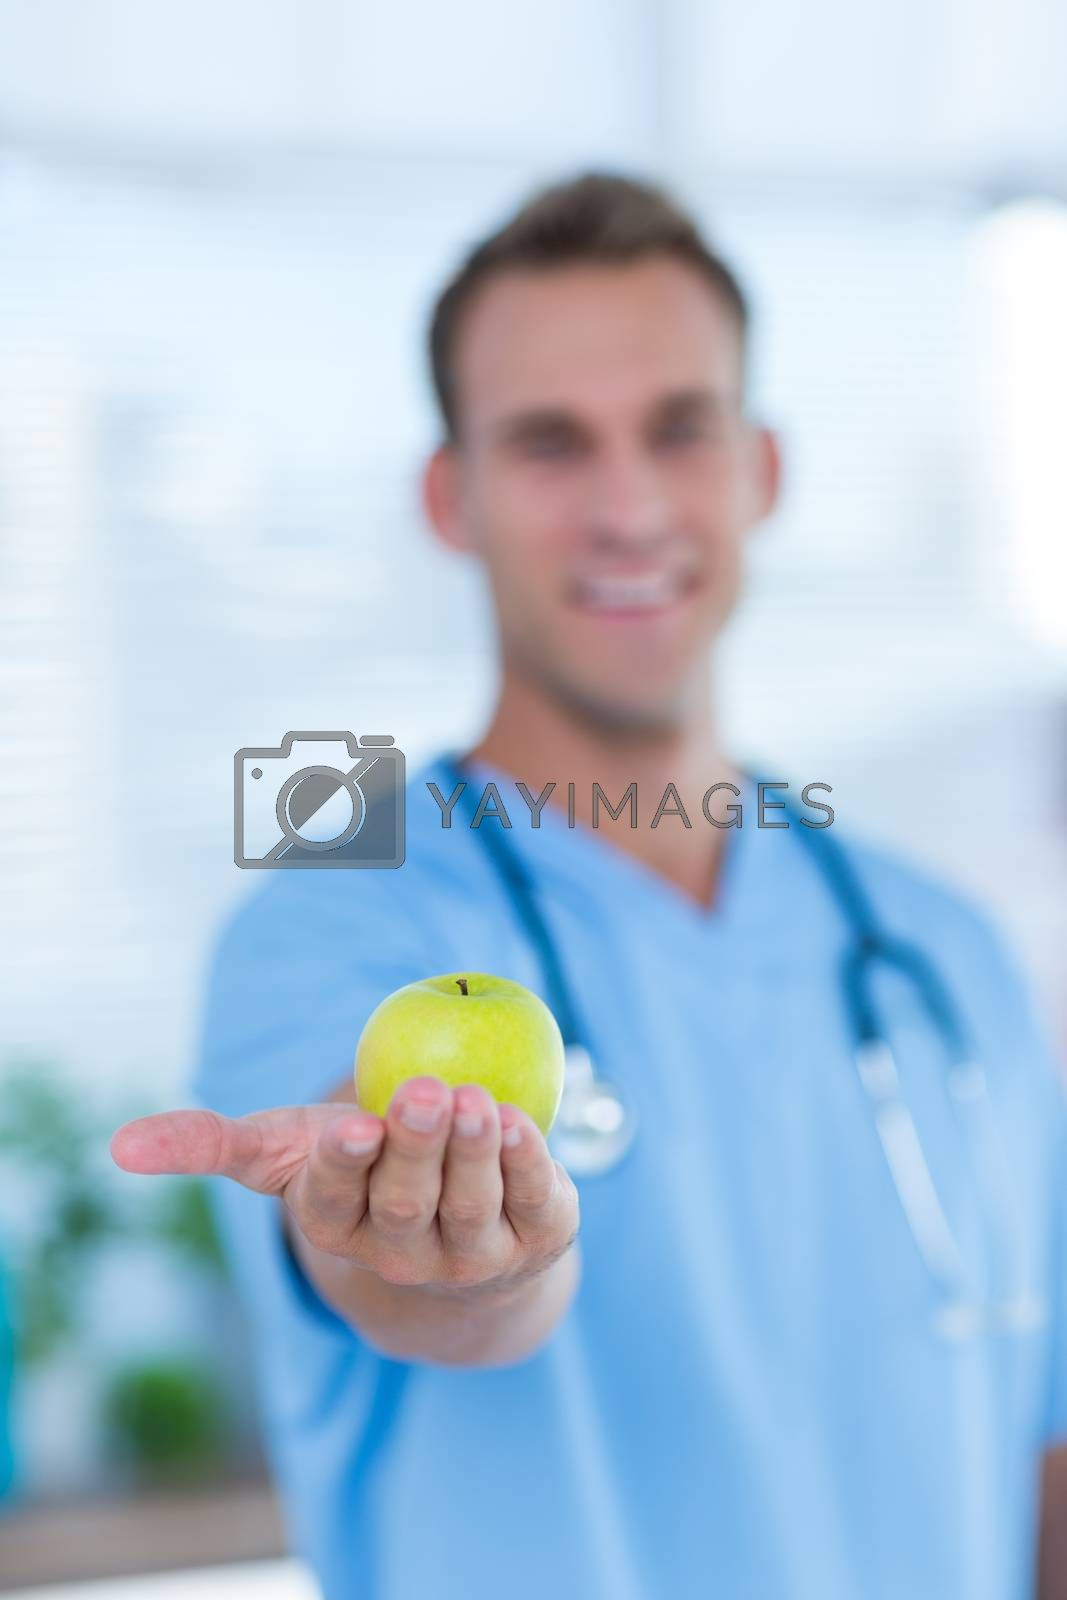 Royalty free image of Smiling doctor presenting a green apple by Wavebreakmedia